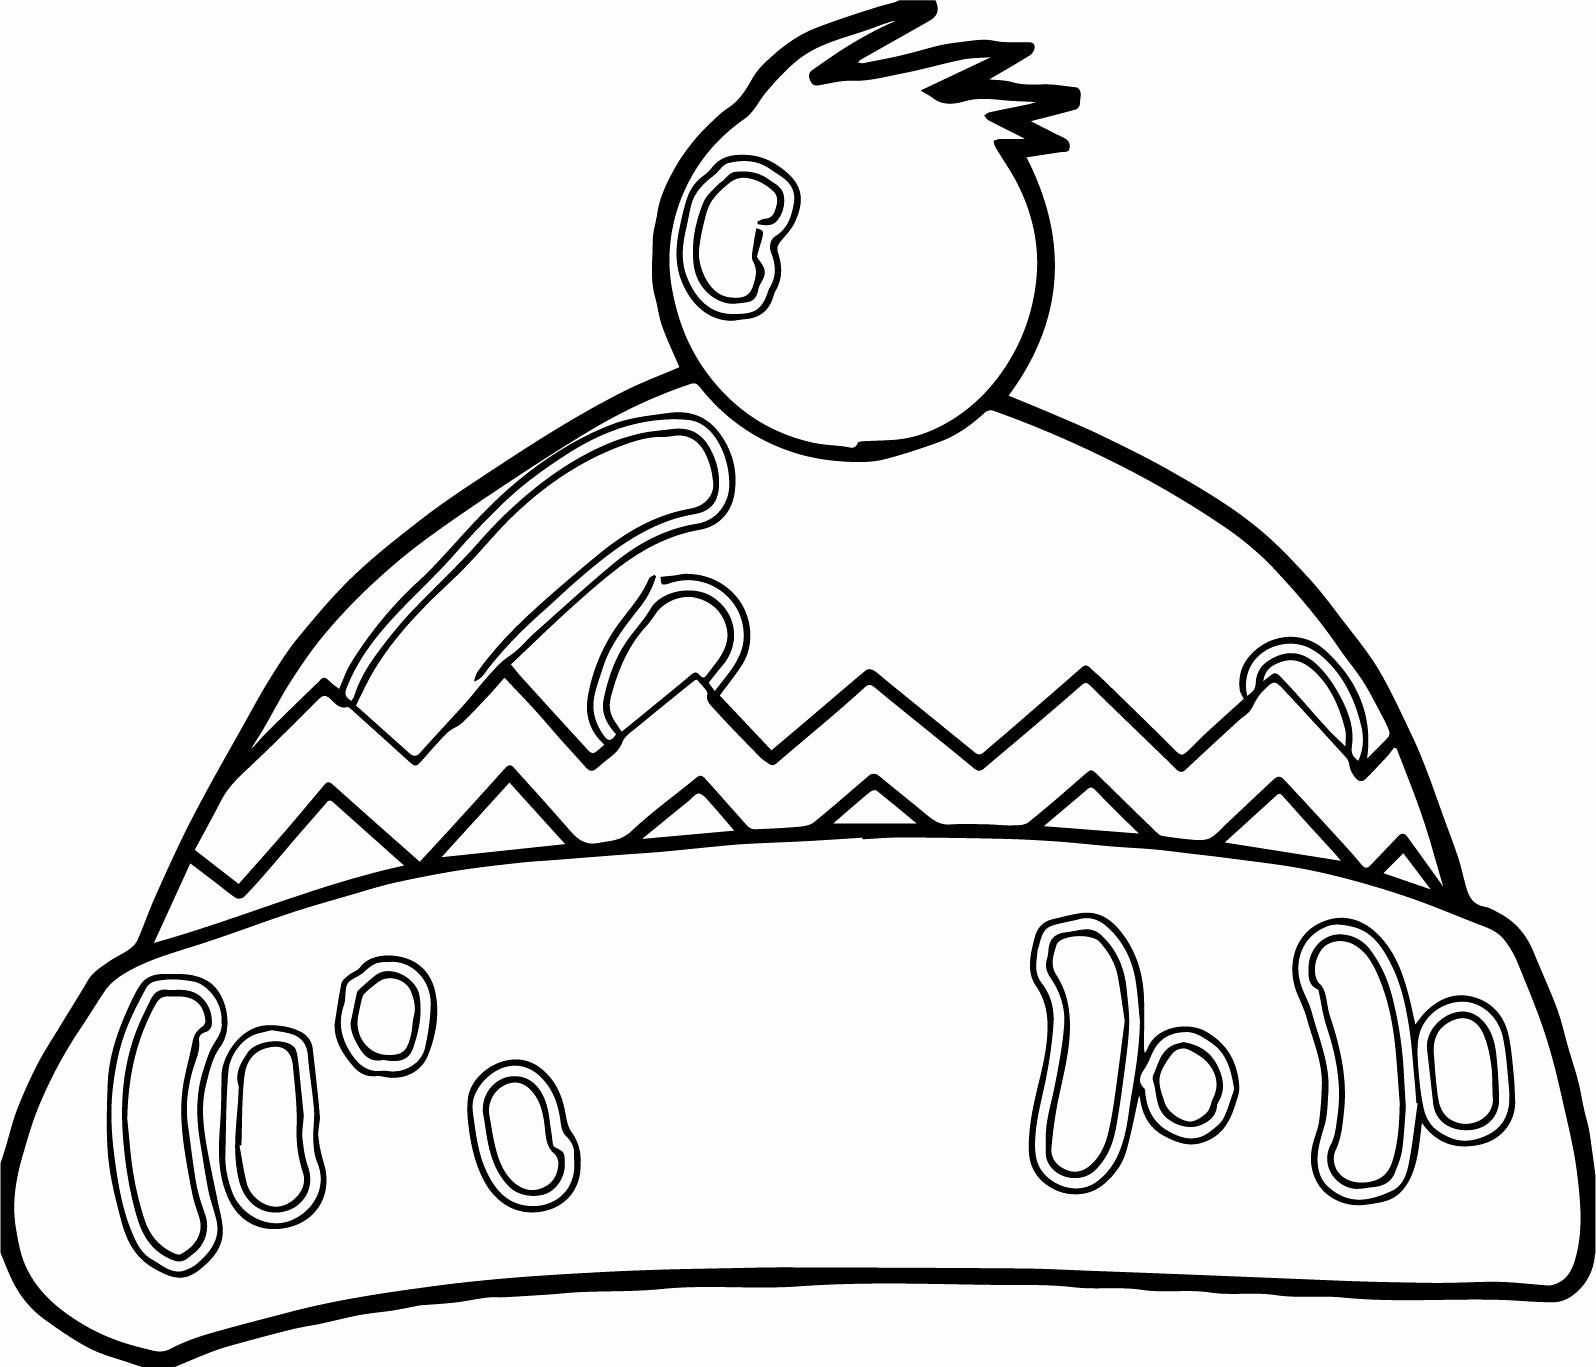 Winter Hat Coloring Page Inspirational Winter Cartoon Hat Coloring Page Winter H In 2020 Coloring Pages Inspirational Coloring Pages Coloring Pages Winter